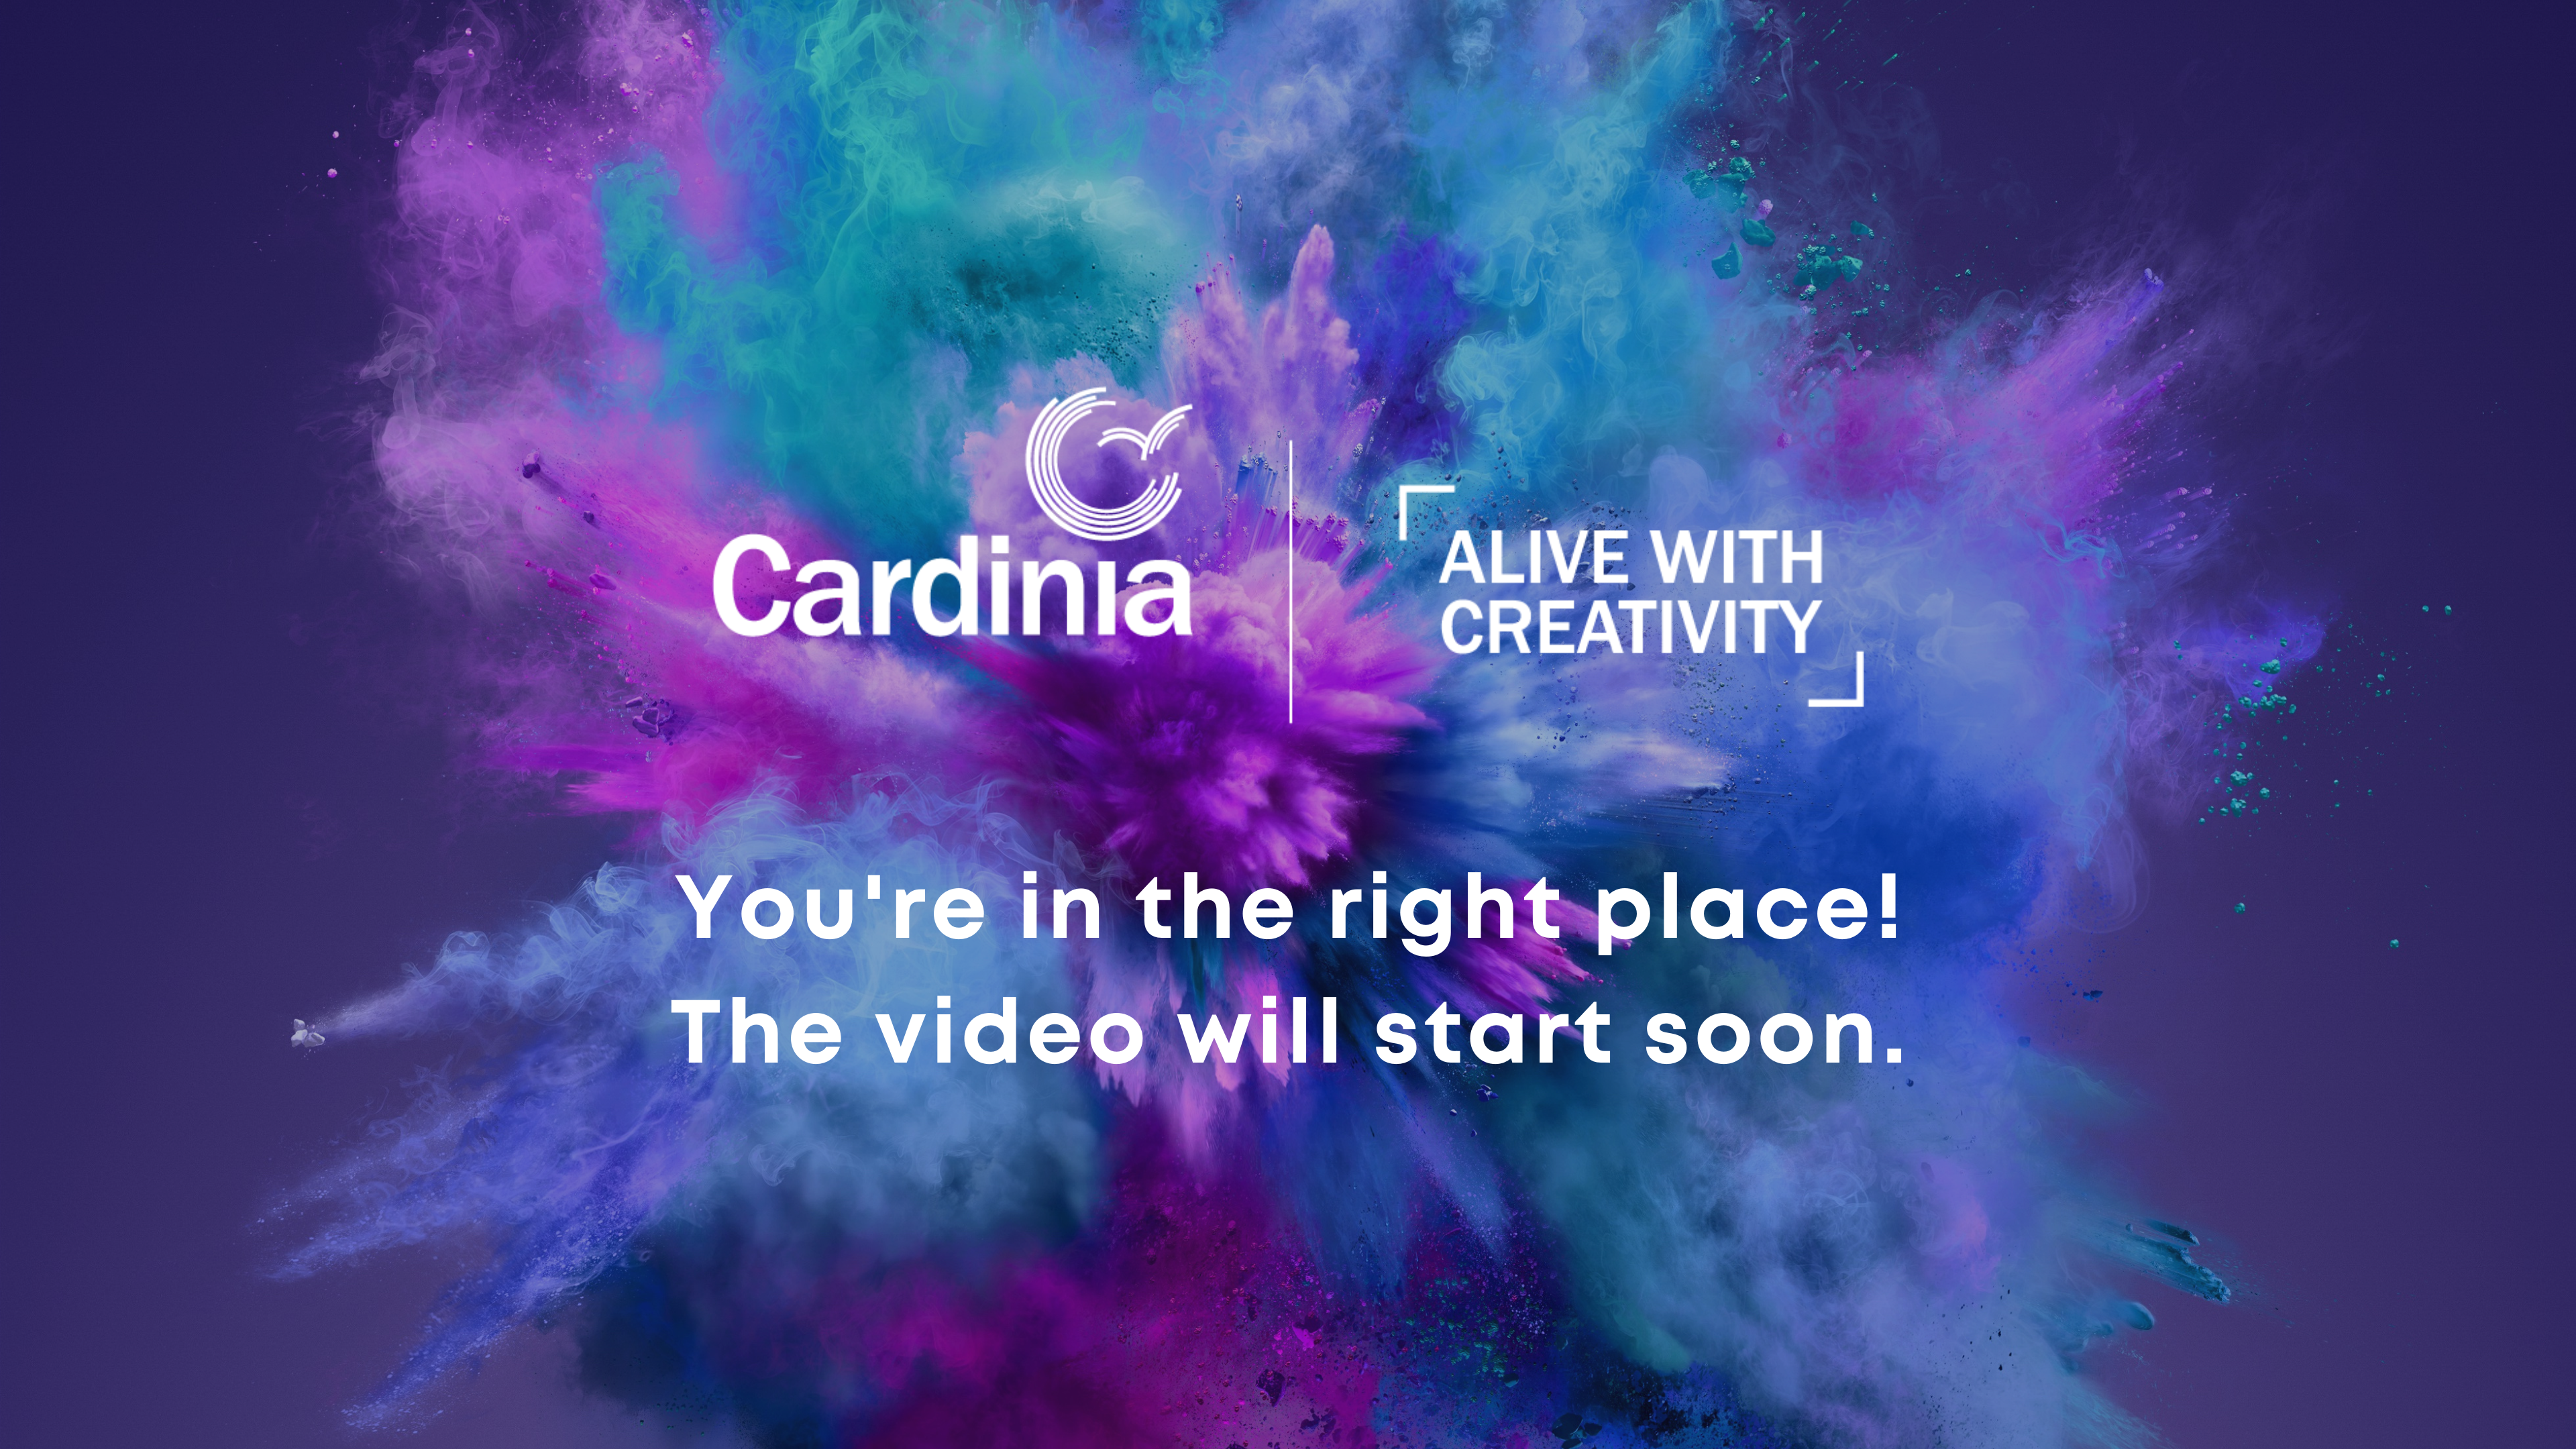 Your Alive with Creativity video will start soon.